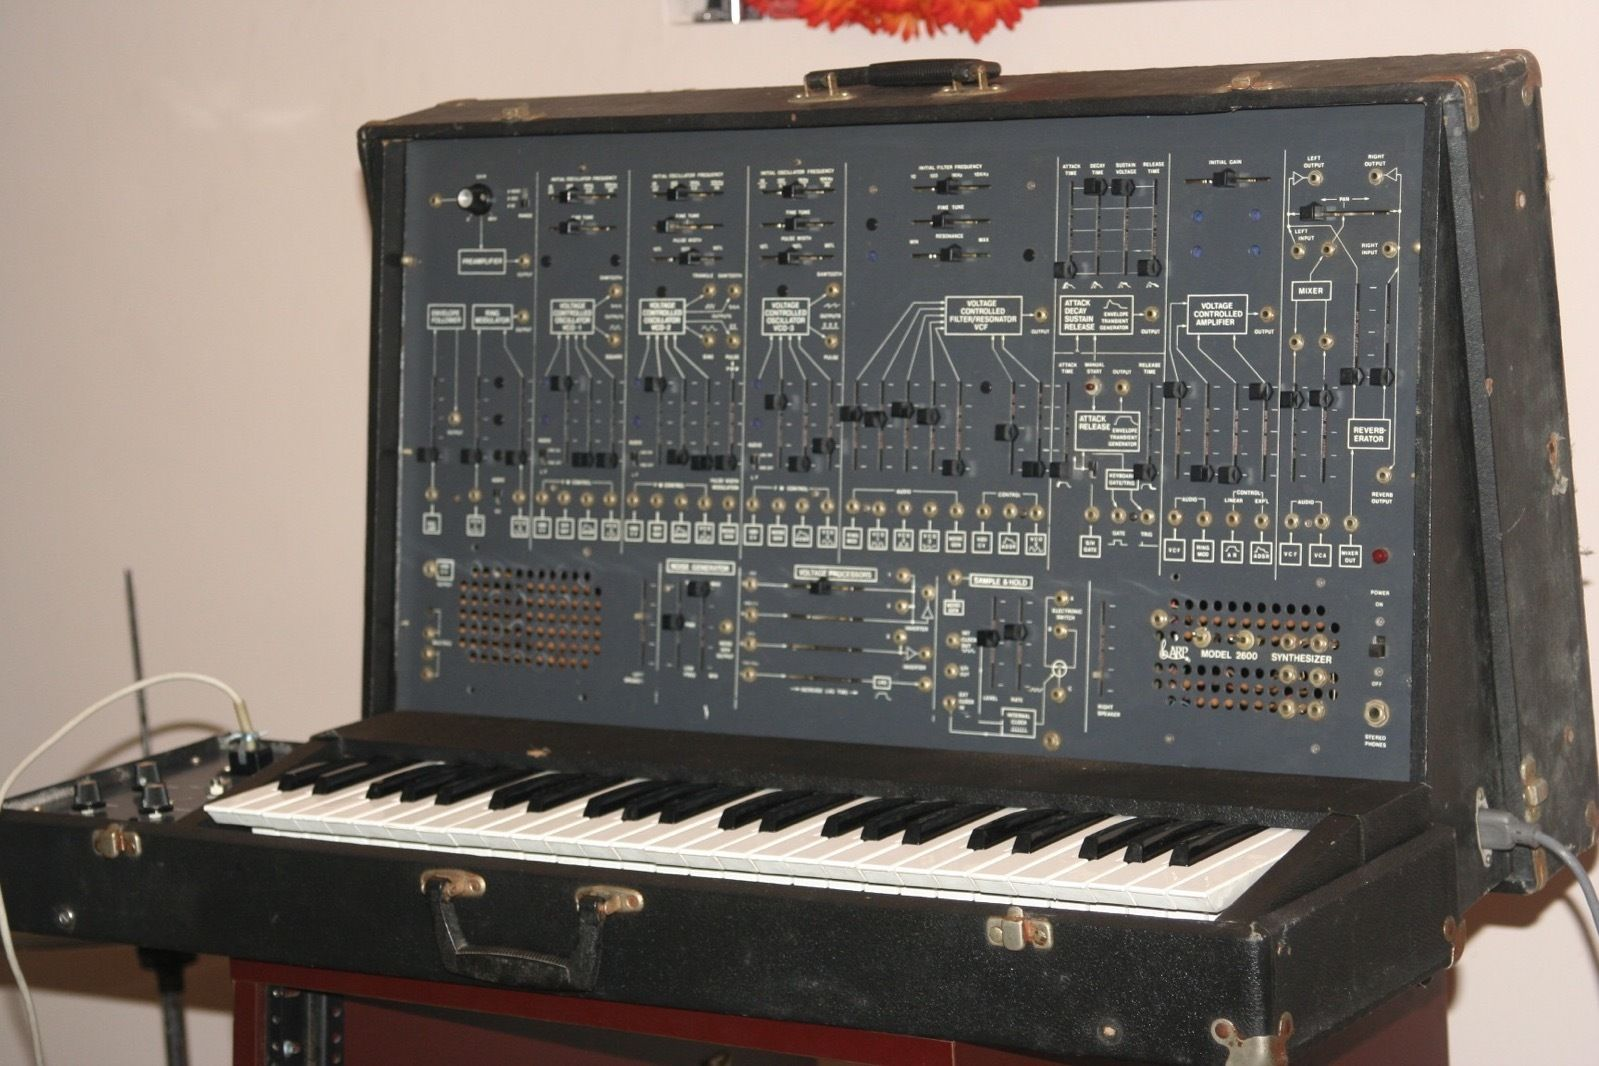 MATRIXSYNTH: ARP 2600 WITH 3604-P KEYBOARD VINTAGE SYNTHESIZER